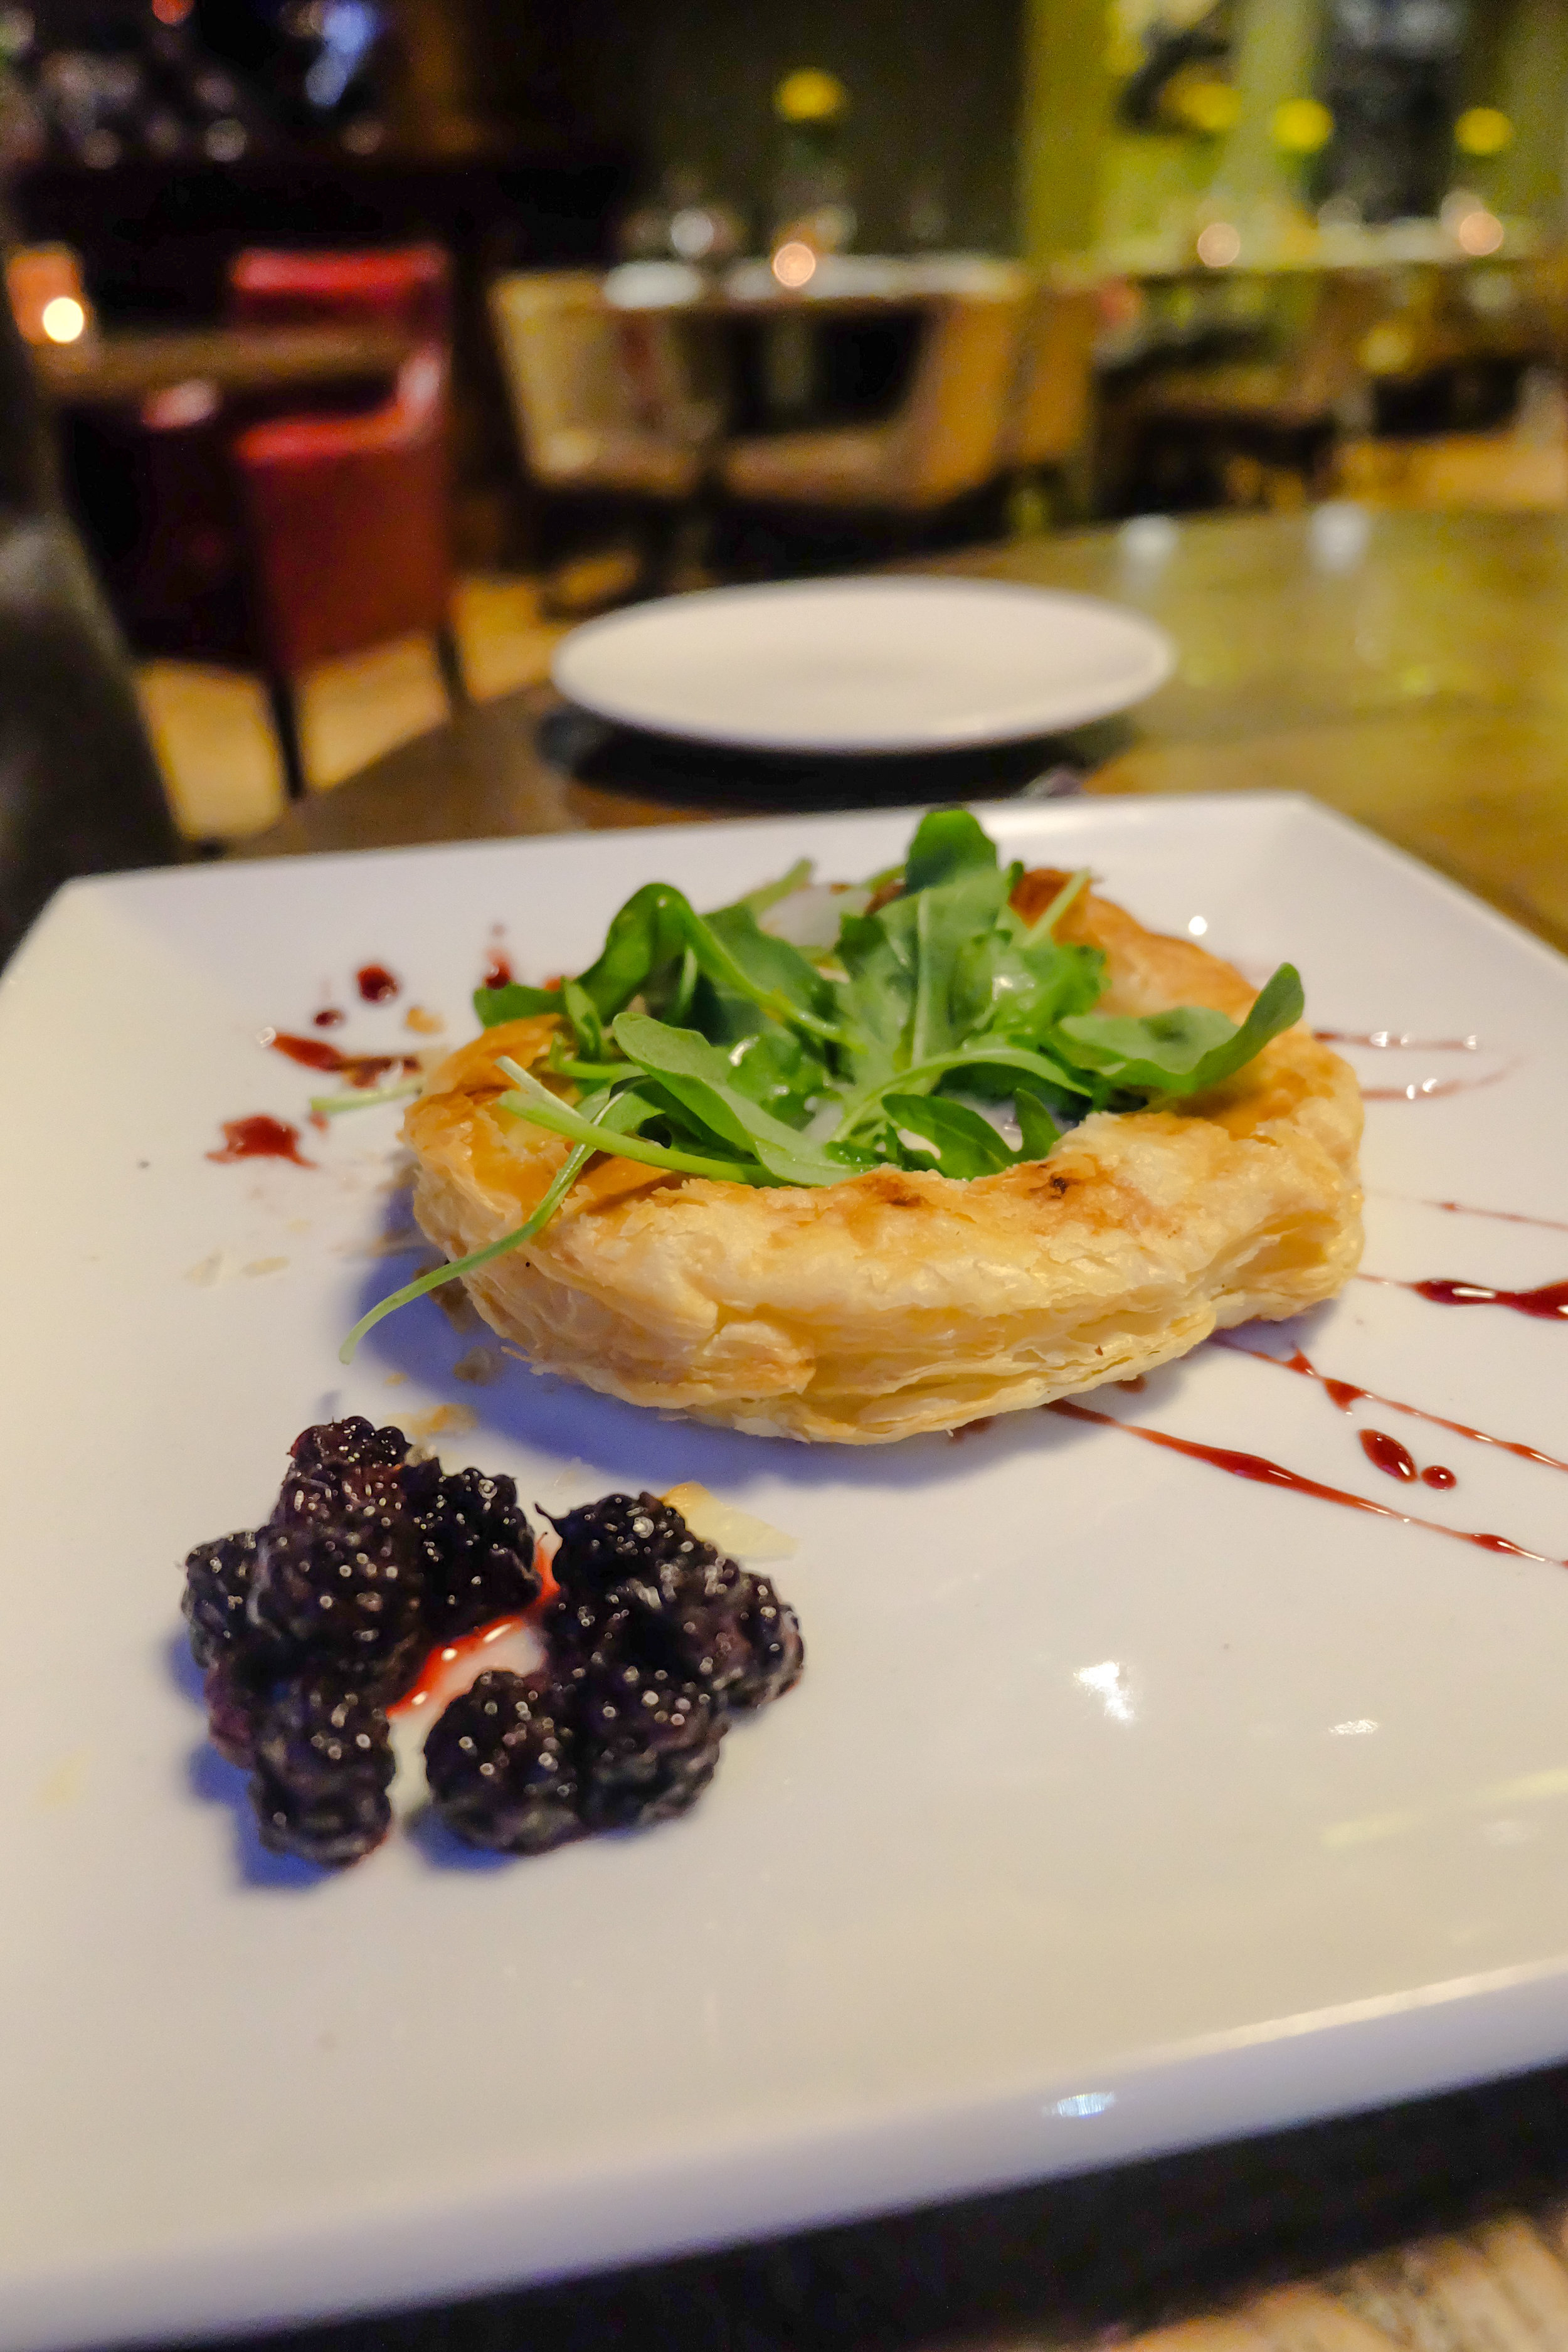 Cheese tart with blackberries